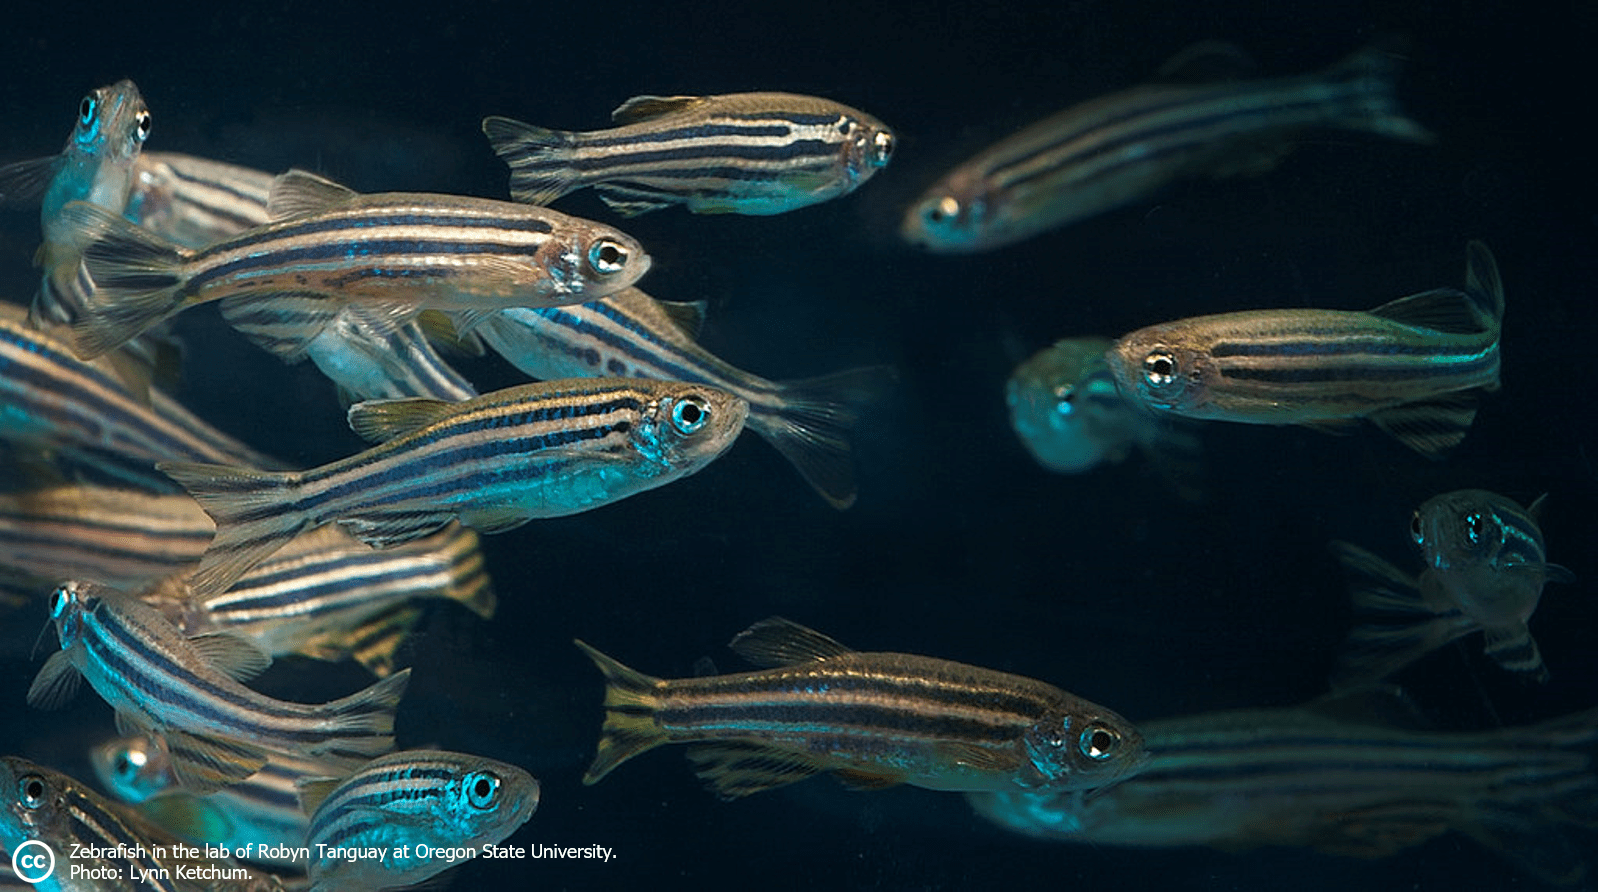 What are zebrafish?